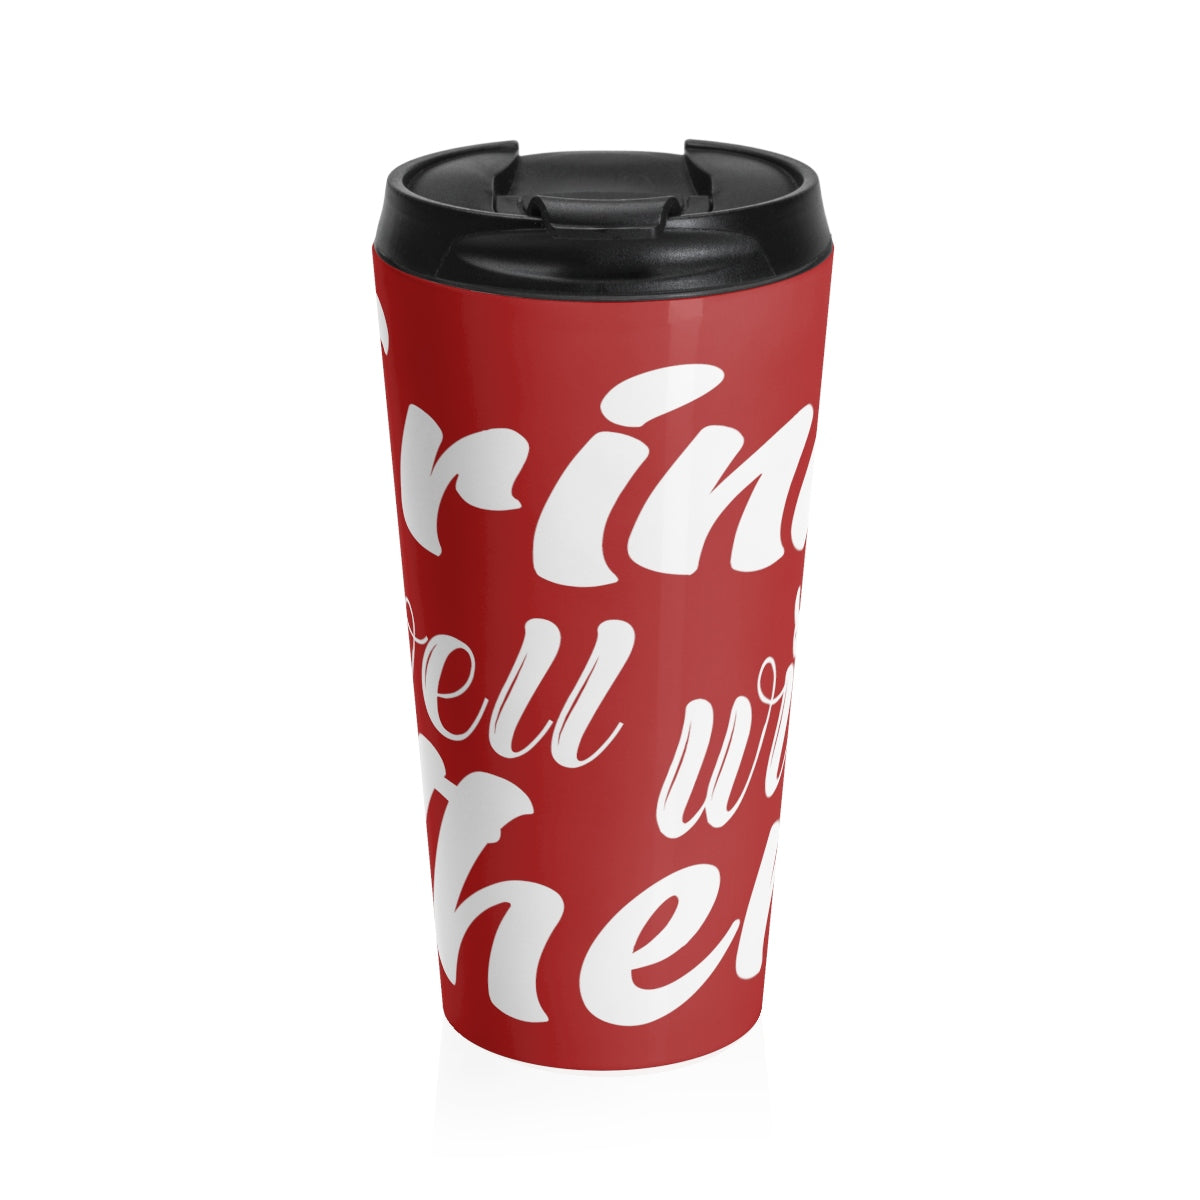 Drinks Well with Others 15 oz Stainless Steel Drink Tumbler in Red - Nauti Details